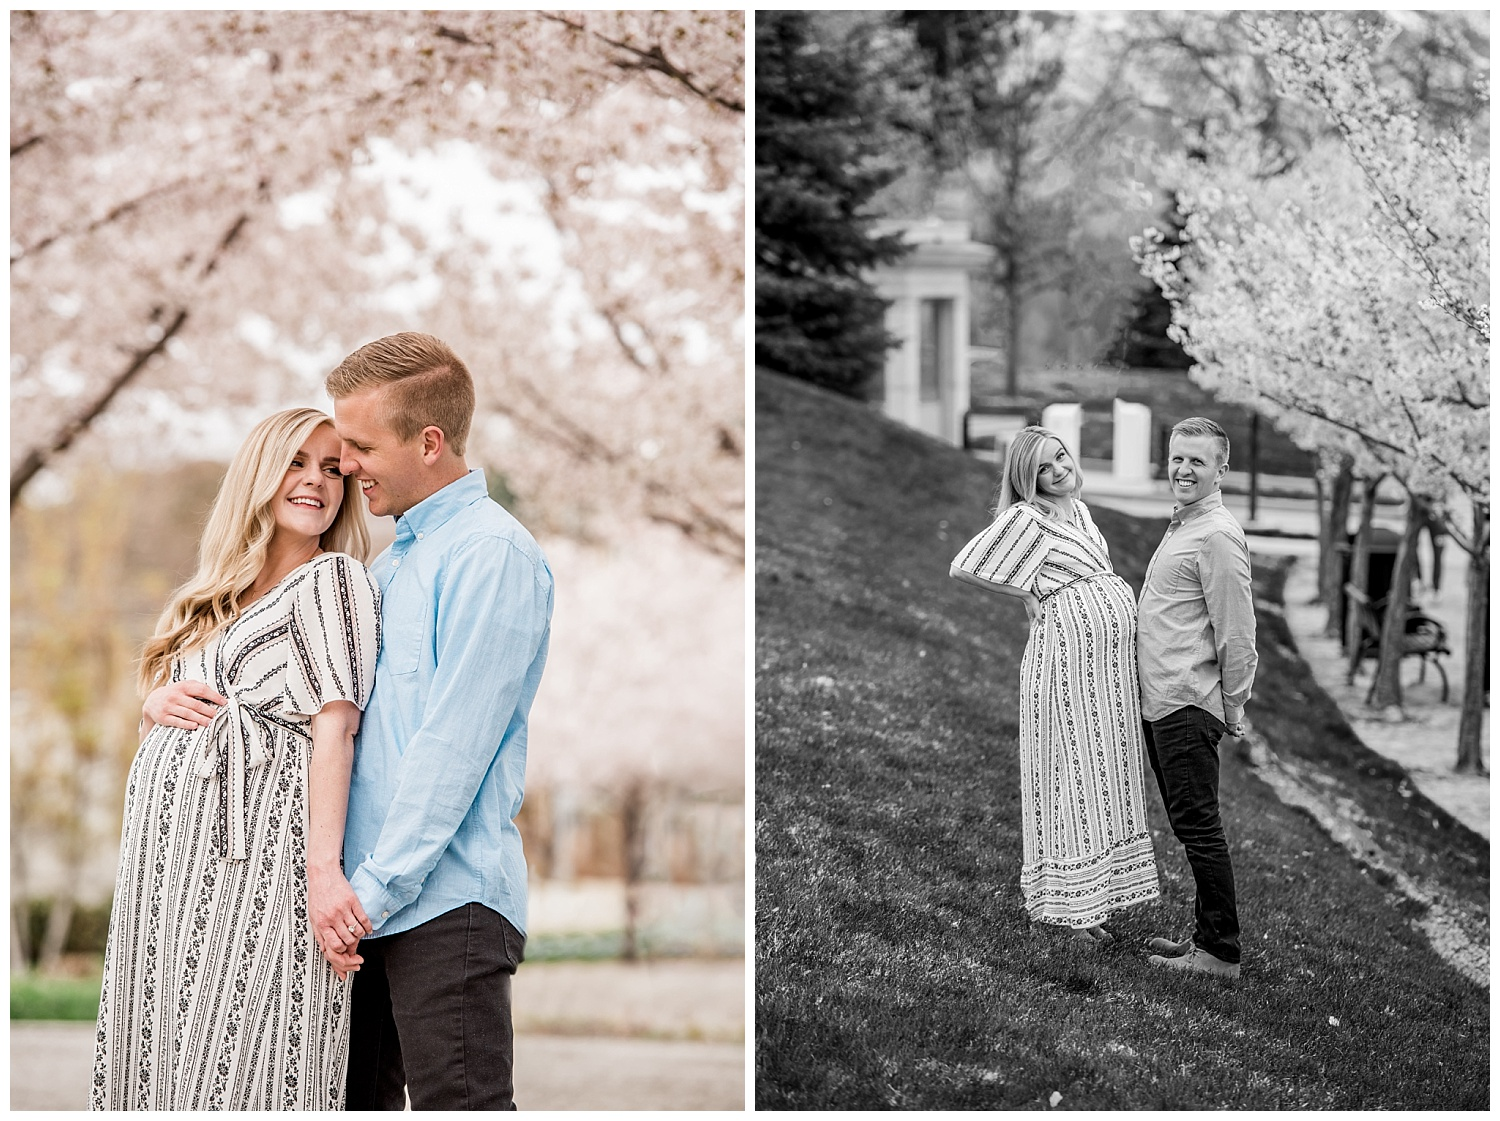 Dan Page Photography, Utah State Capitol Maternity Session, Spring Cherry Blossoms (10).jpg